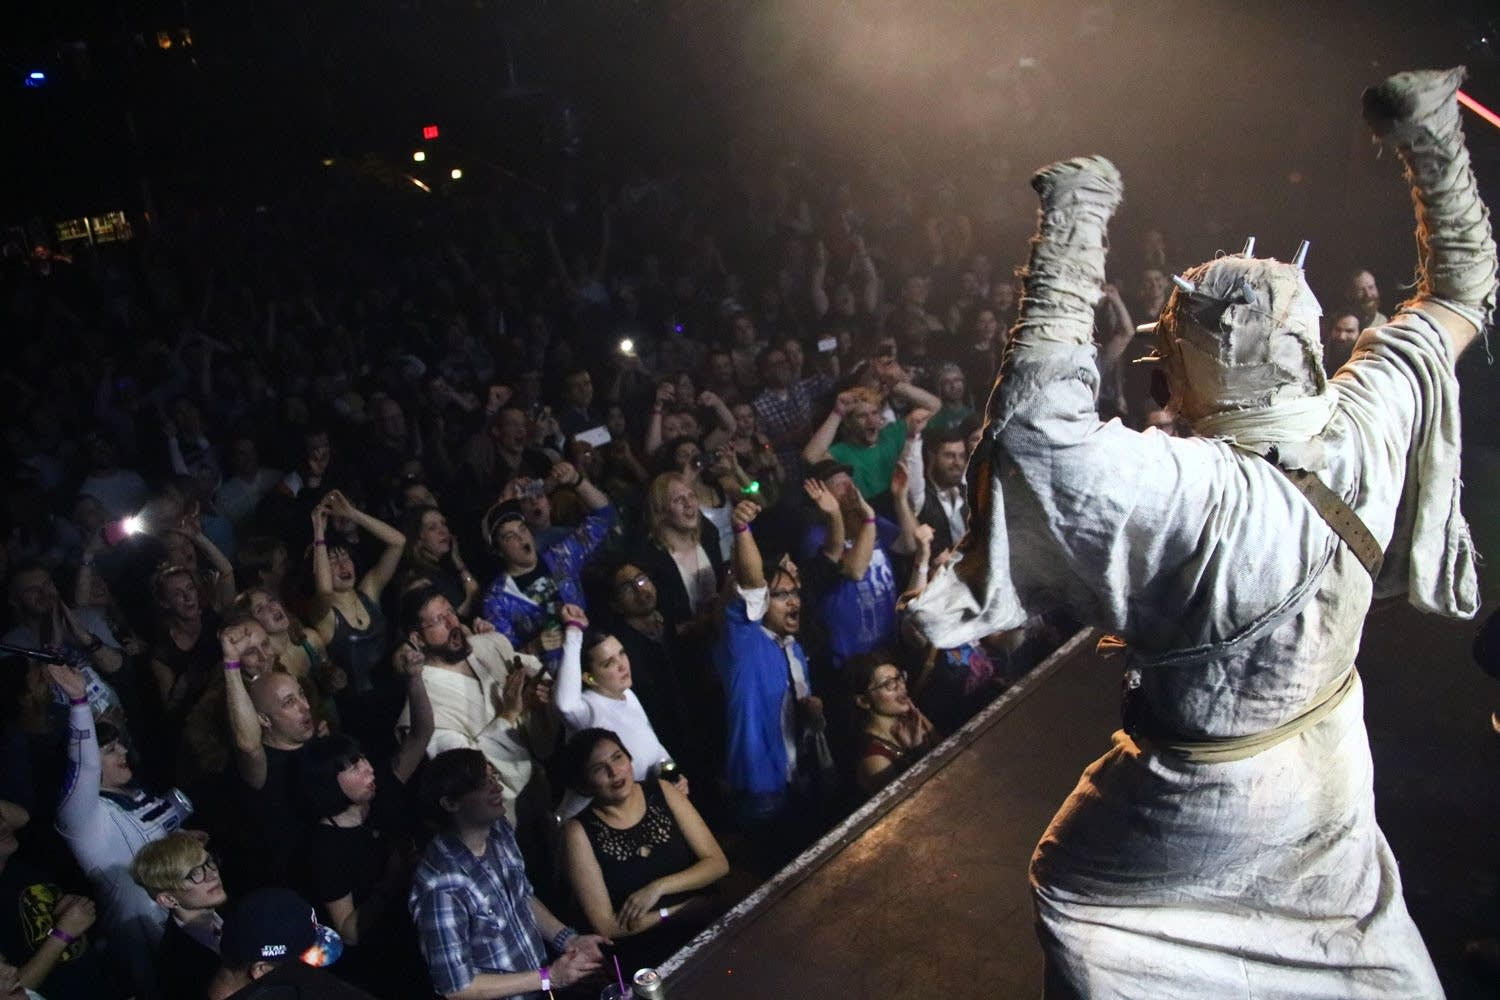 Tusken Raider excites crowd at First Avenue